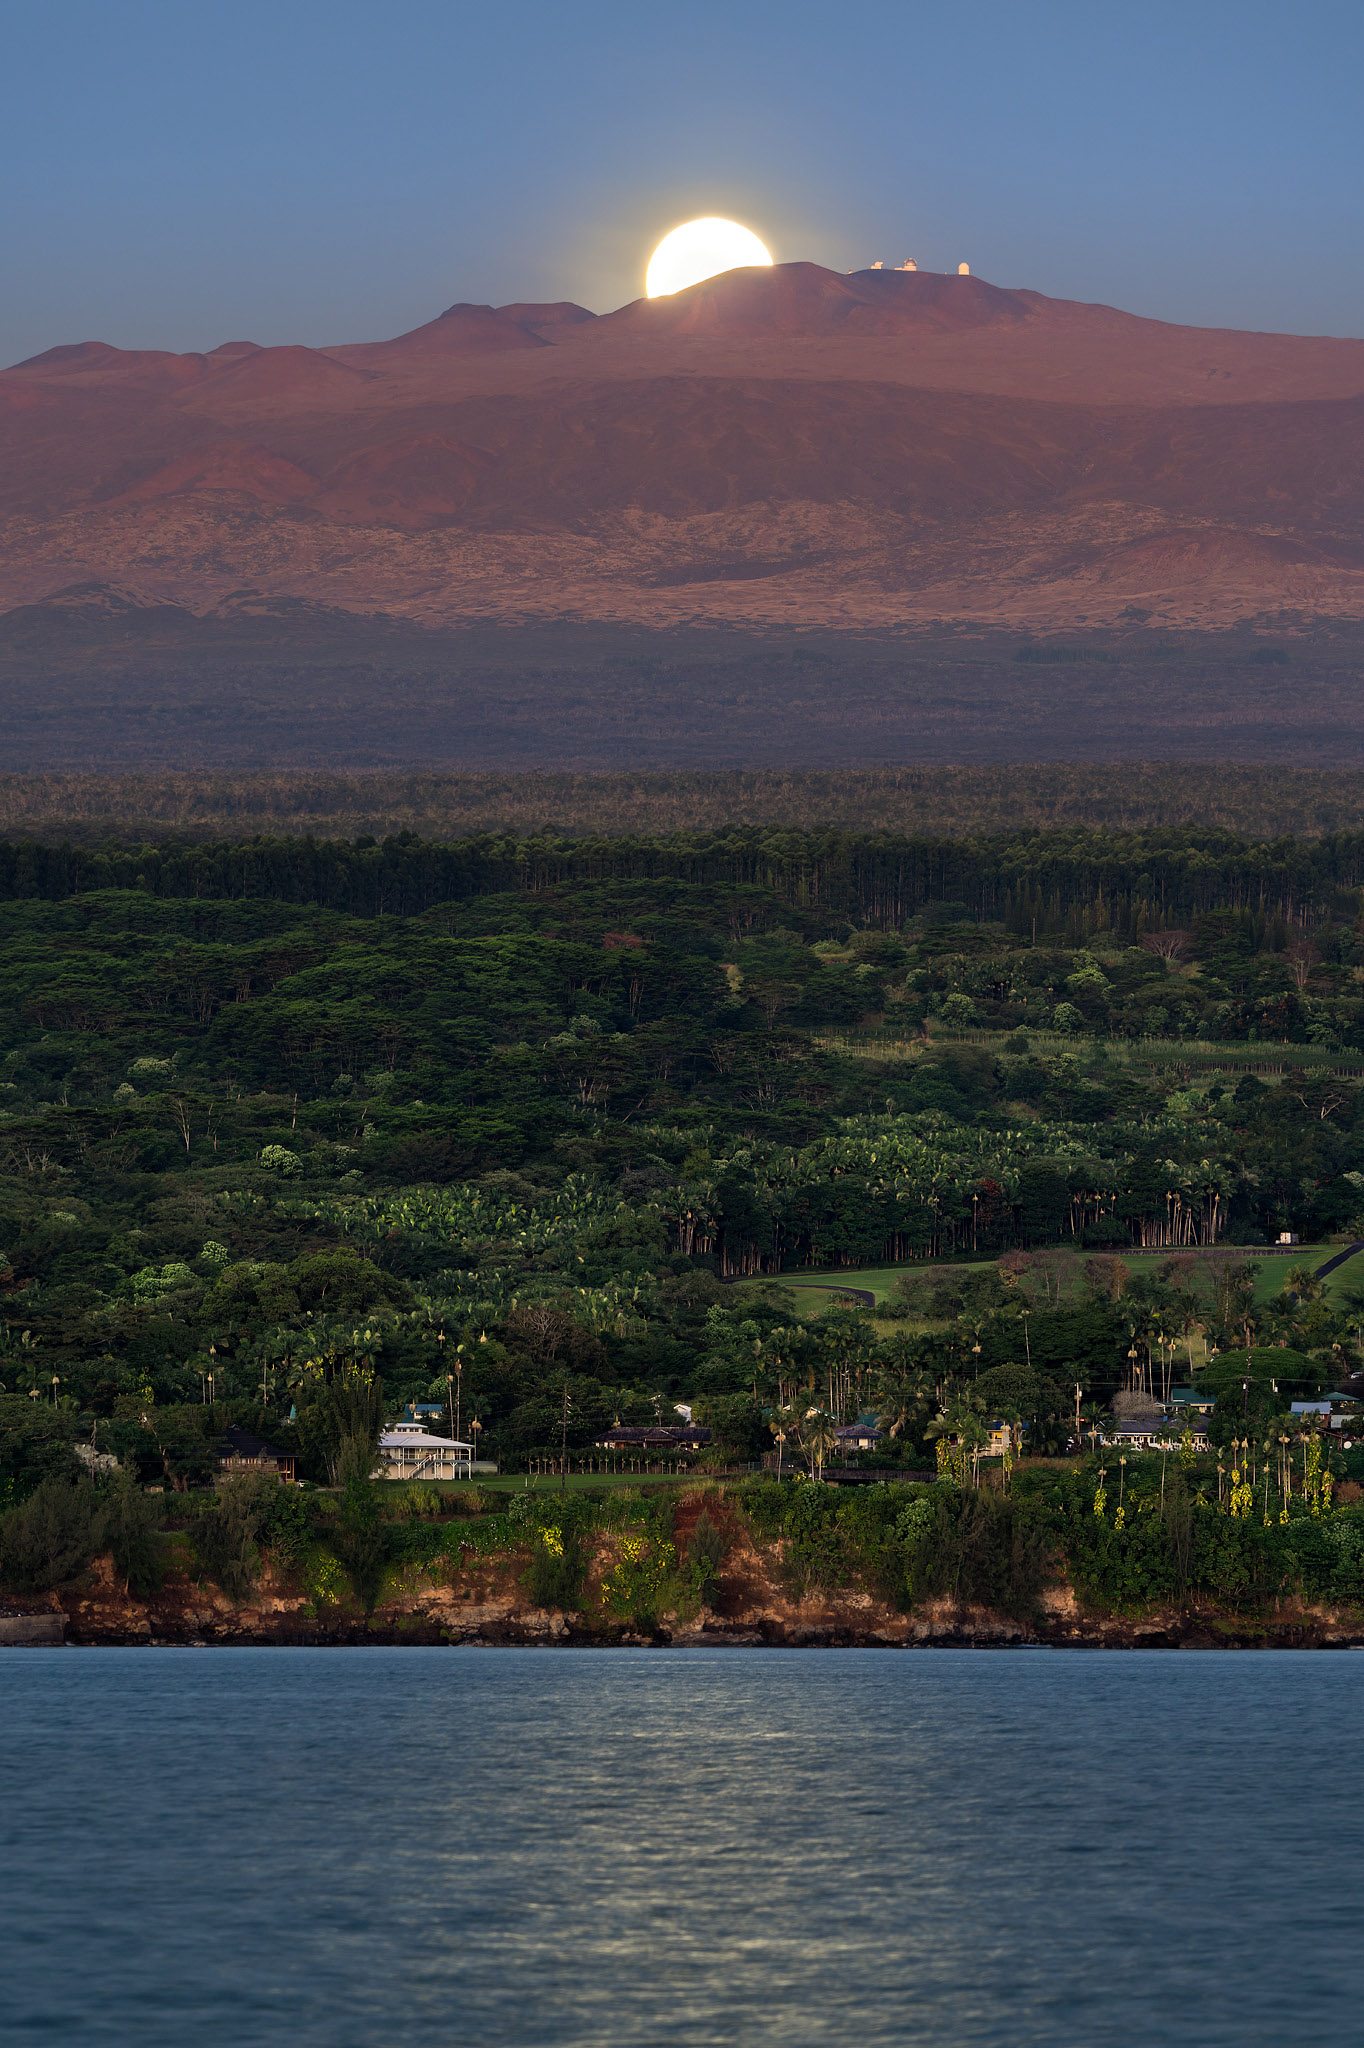 In this image, Mauna Kea is illuminated by a full moon dropping behind the sacred mountain in the early morning. The difficulty...